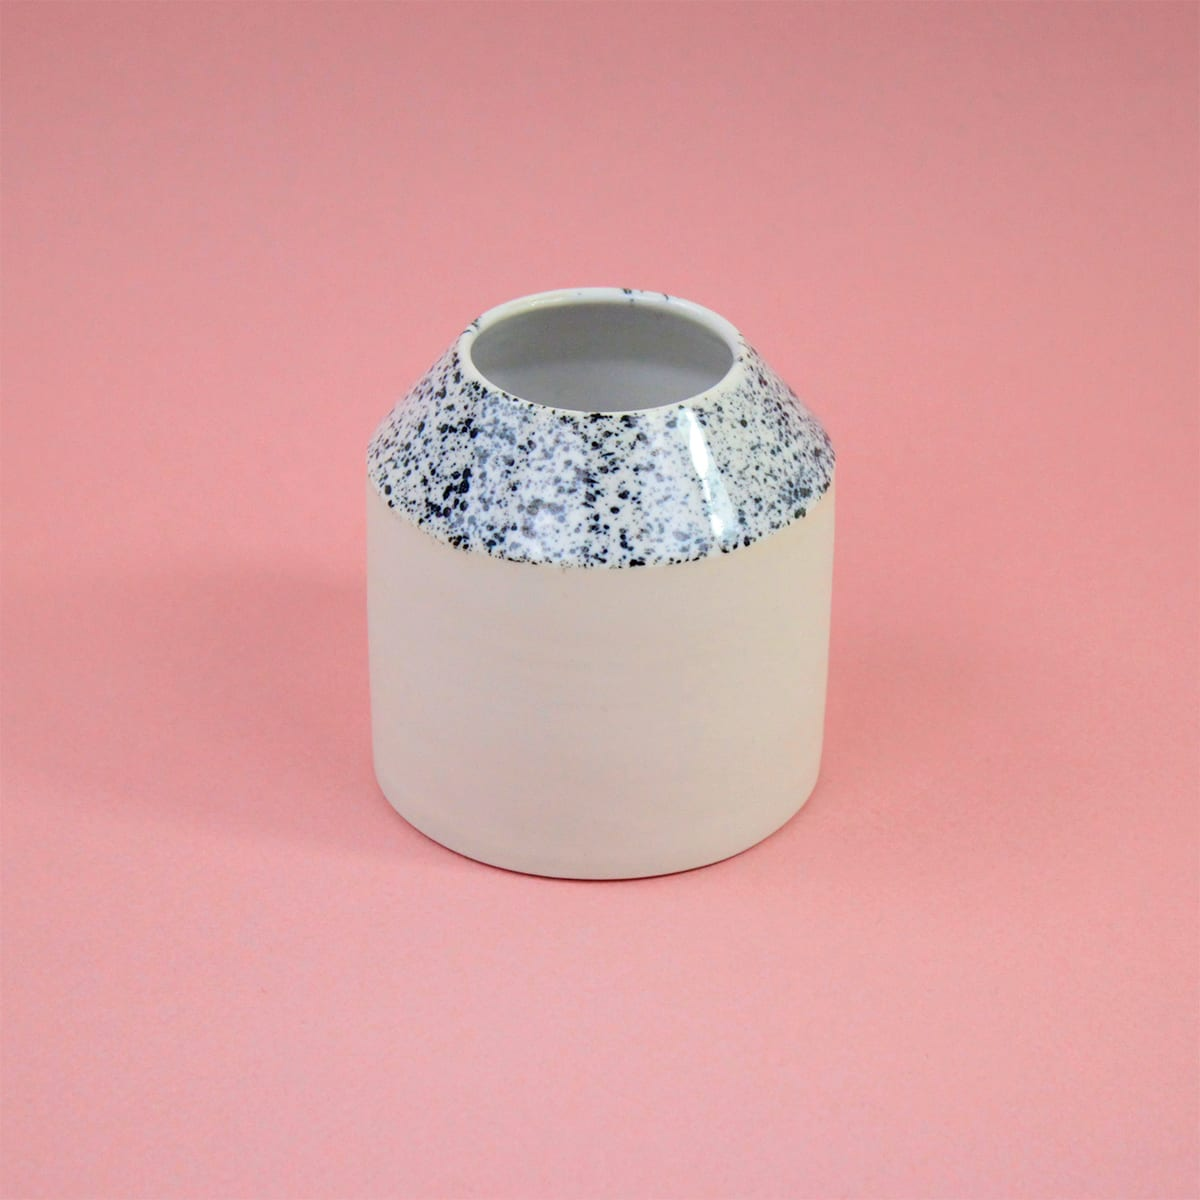 VASE SPECKLED N0 No ceramic Cool Machine